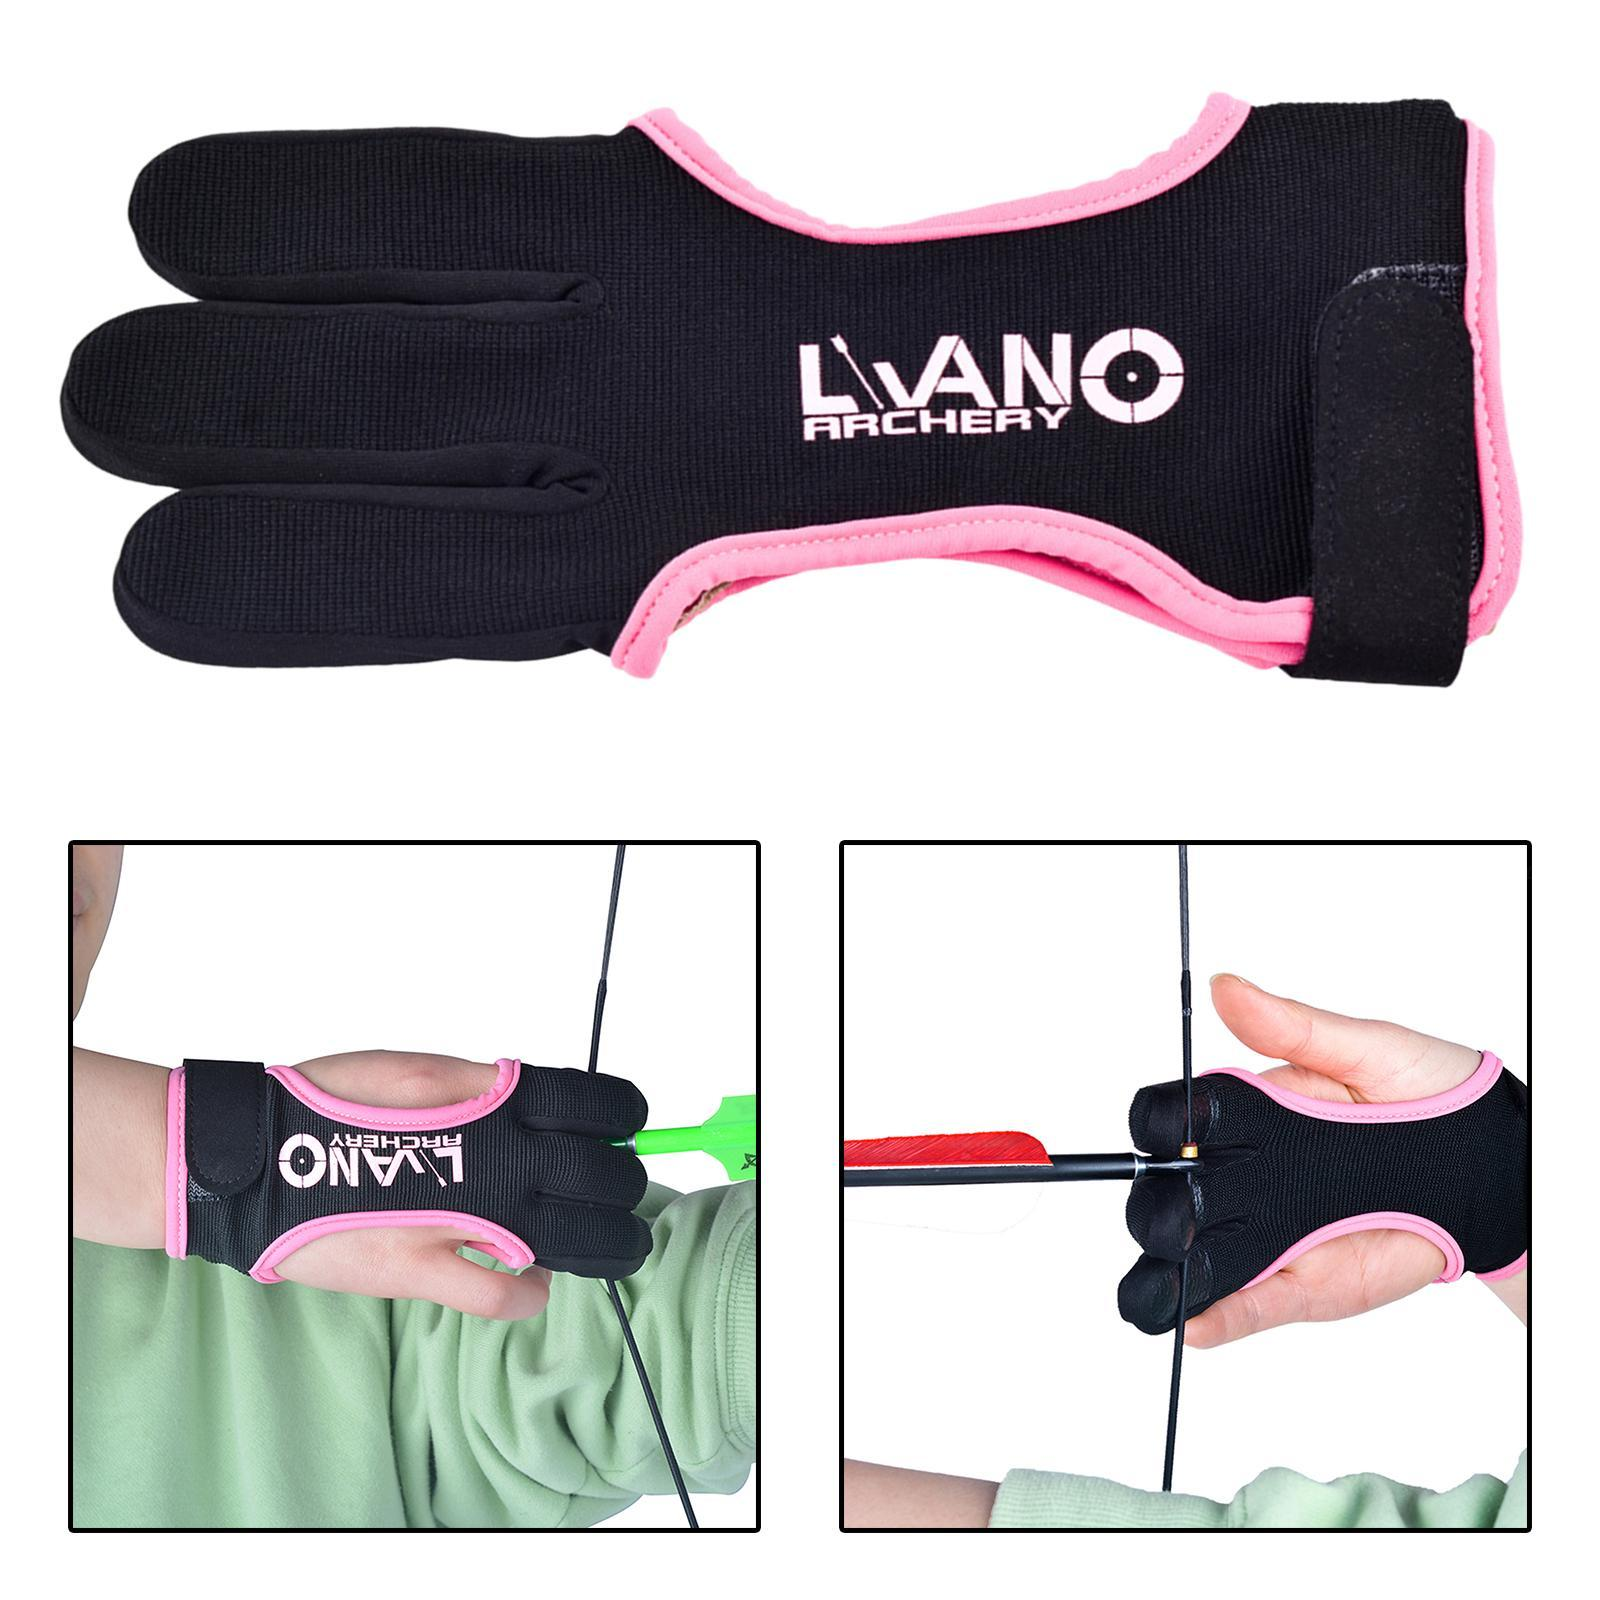 thumbnail 40 - Archery Glove for Recurve & Compound Bow 3 Finger Guard for Women Men Youth